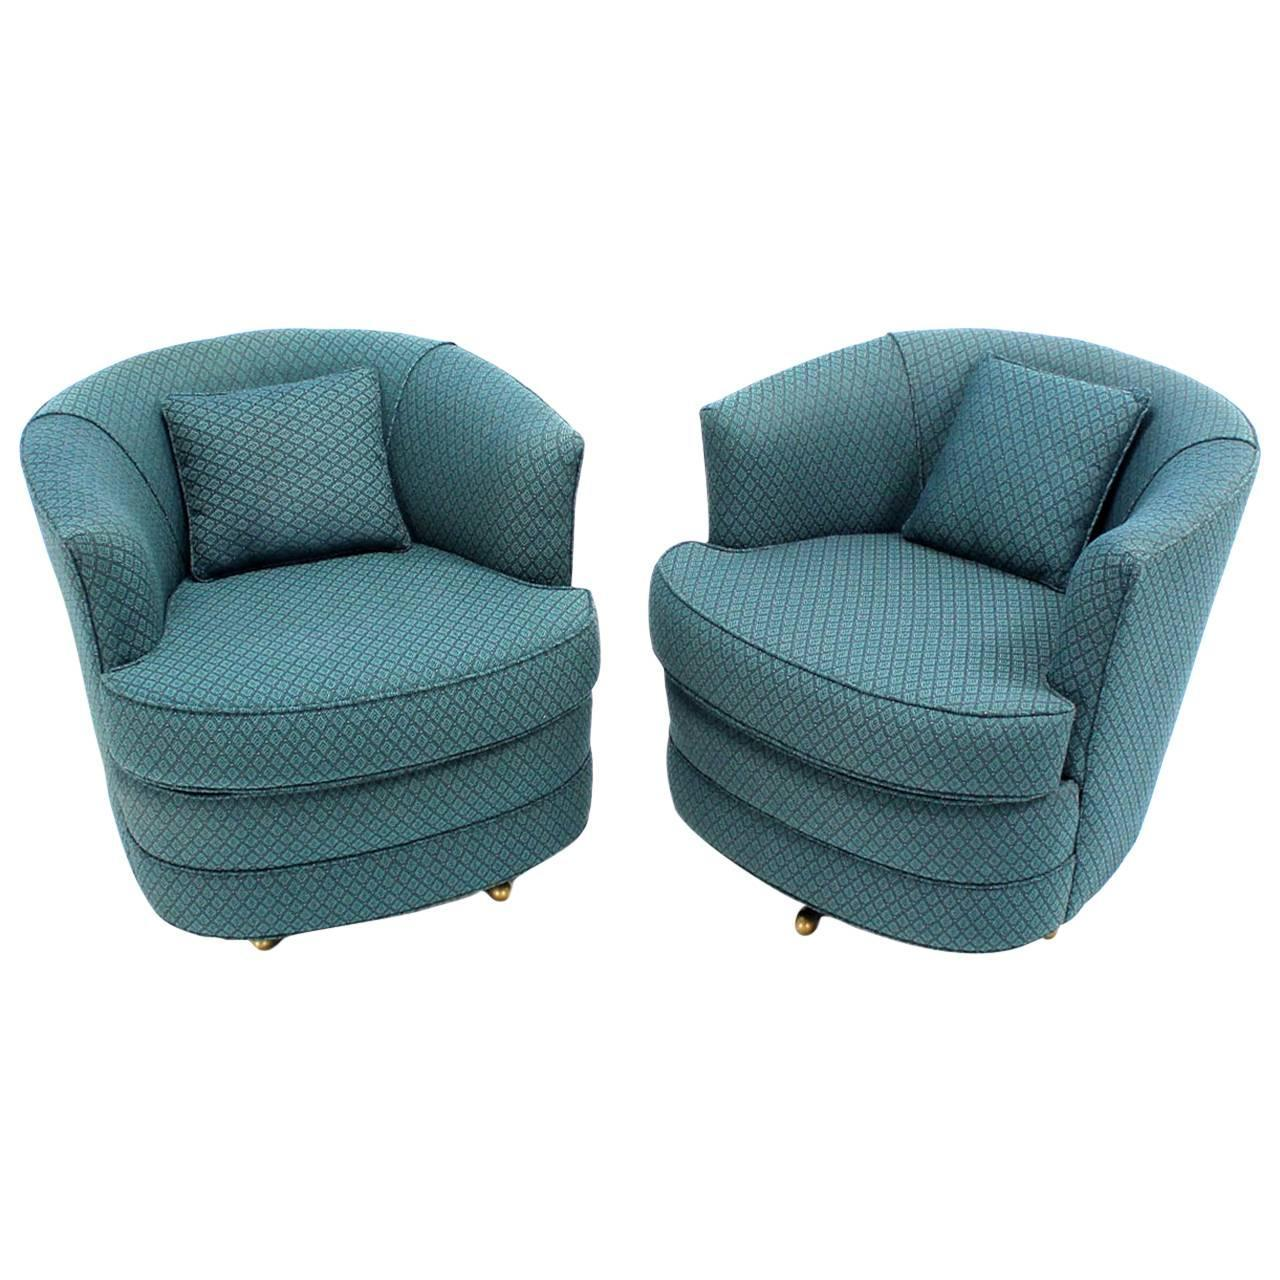 leather swivel barrel chair seagrass arm pair of lounge chairs for sale at 1stdibs